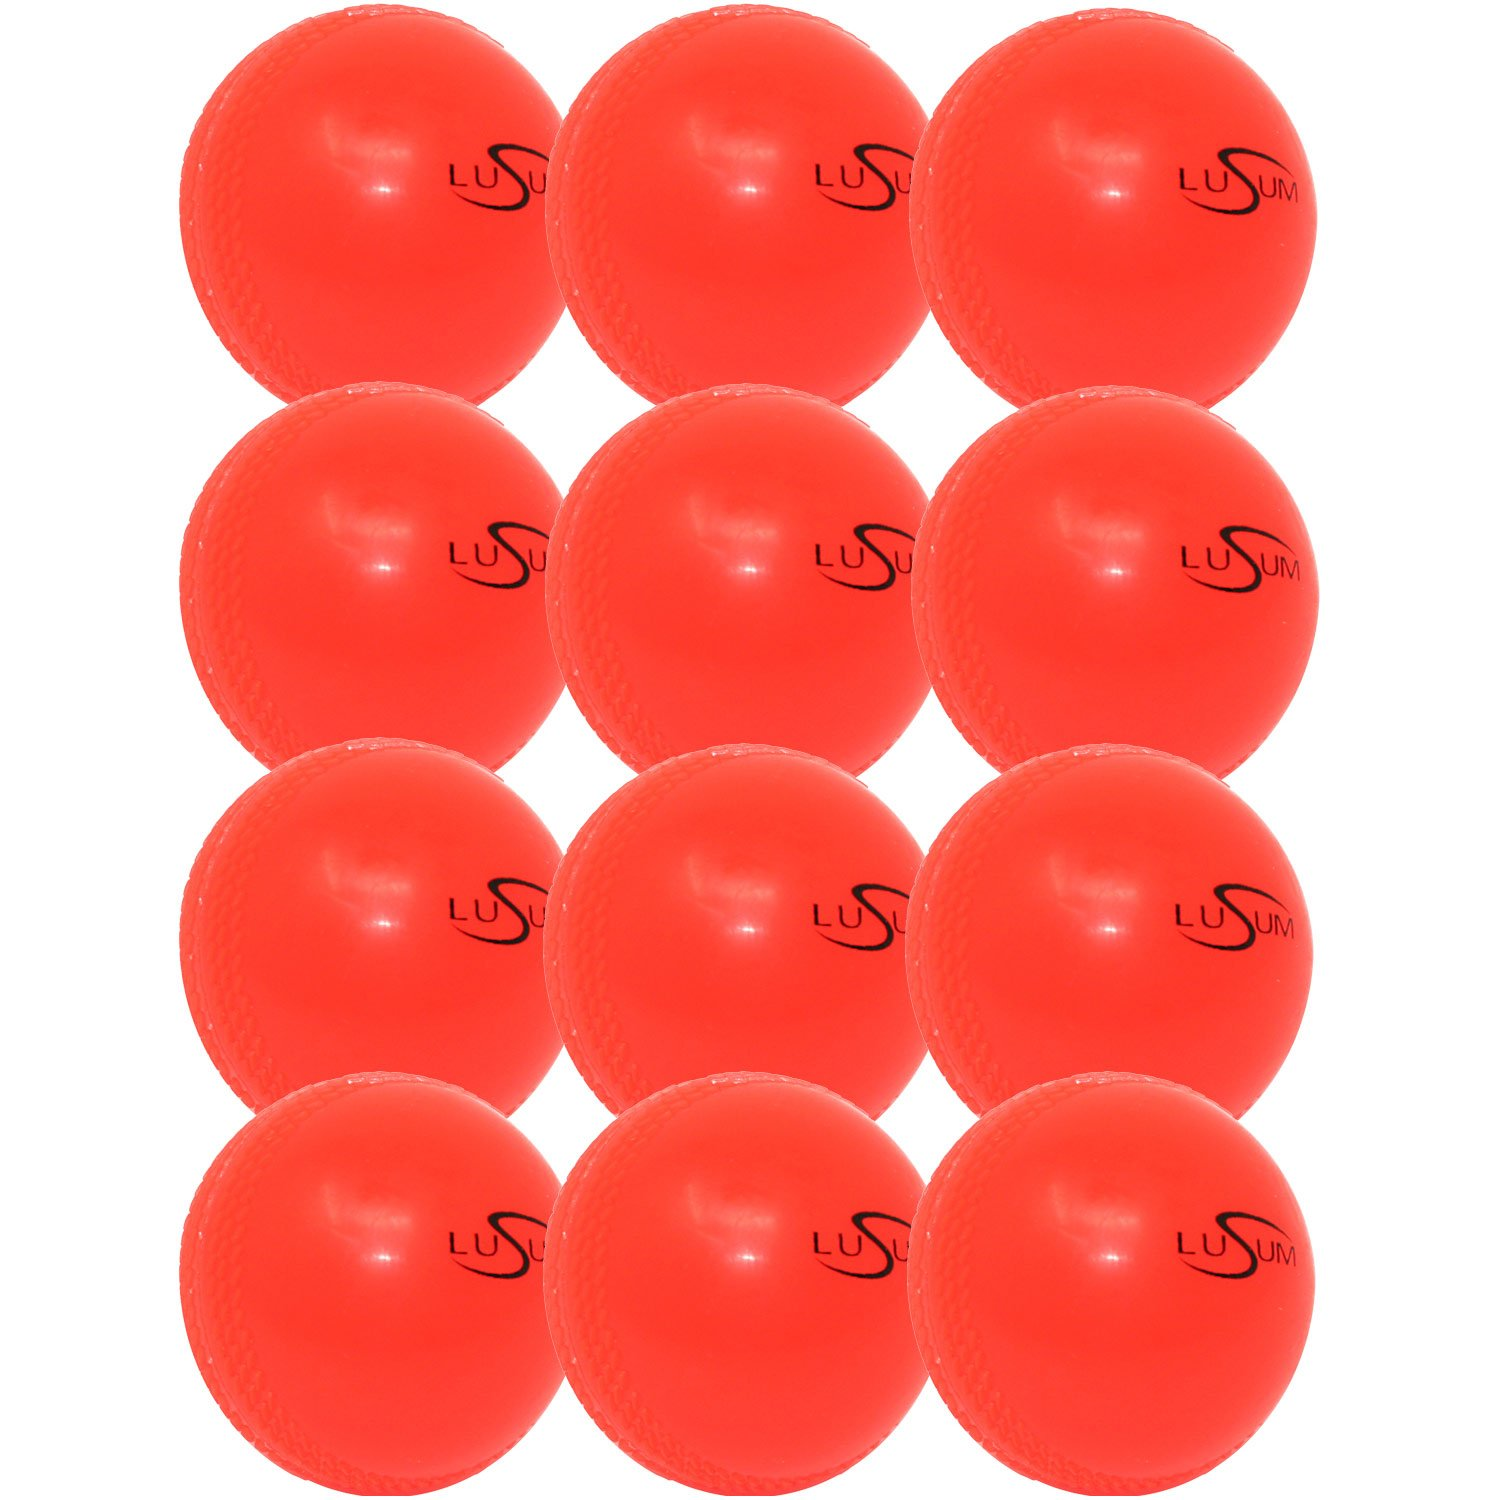 1 Dozen Lusum SoftAir Cricket Training Balls (Windballs)